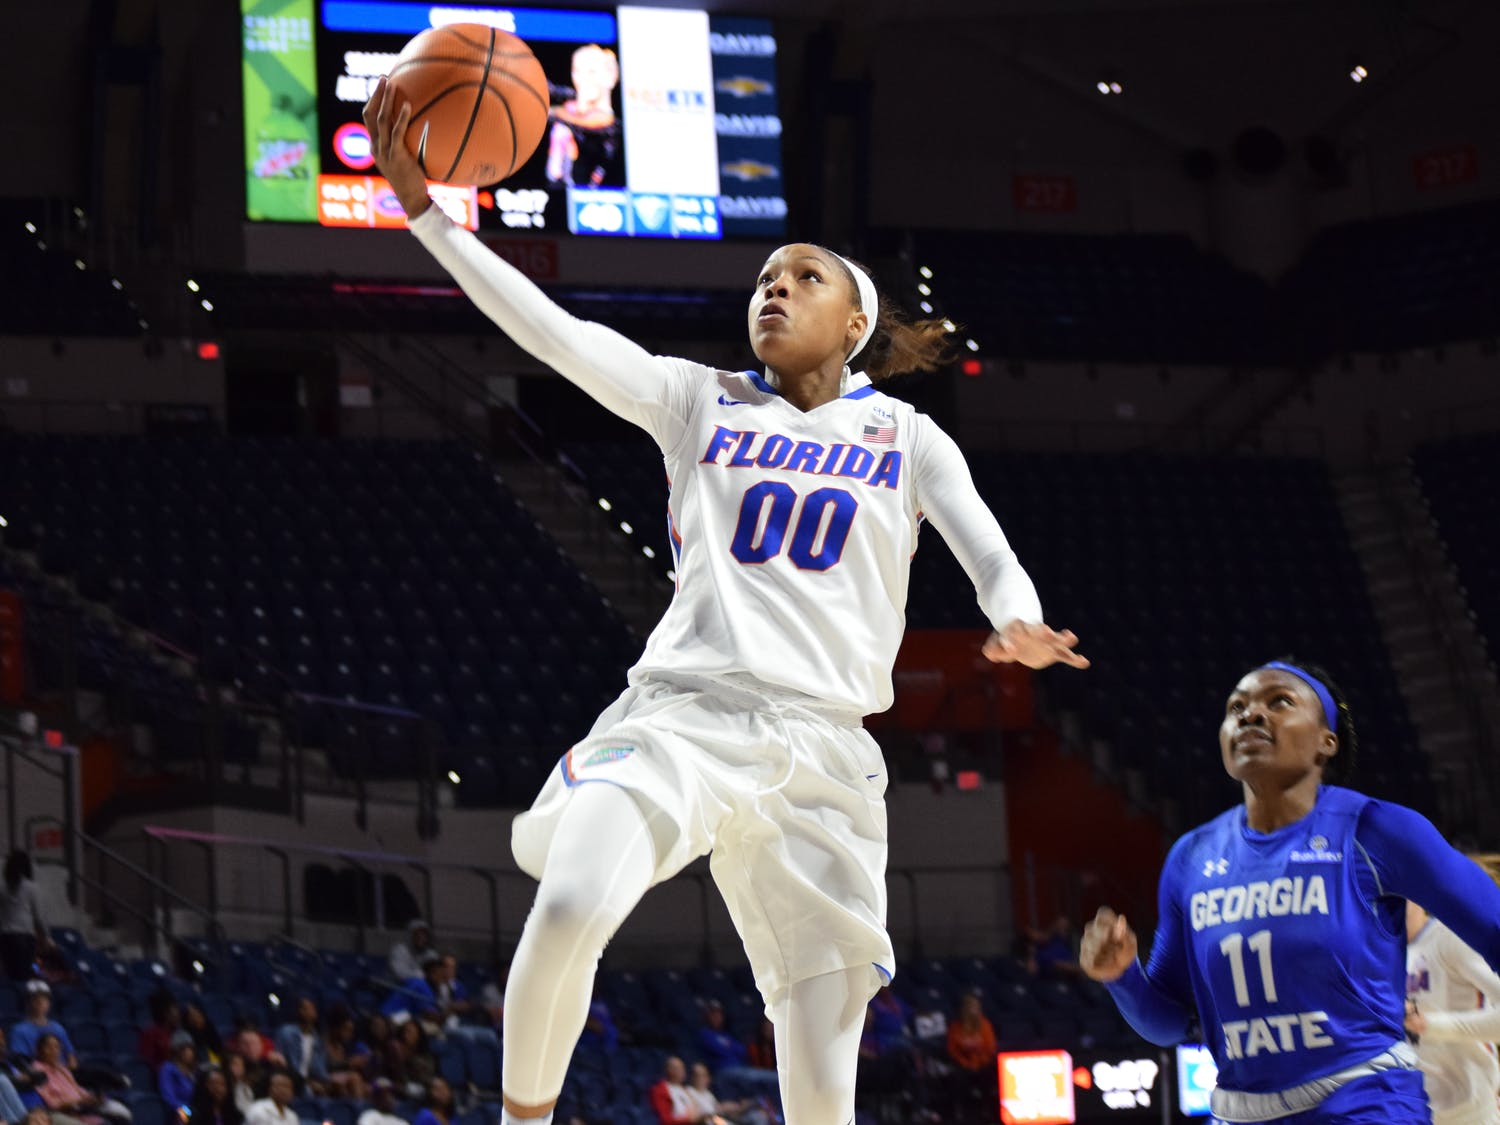 Guard Delicia Washington released her potential game-winning layup too late as time expired in regulation. Florida went to overtime with Northwestern and lost, 83-74.